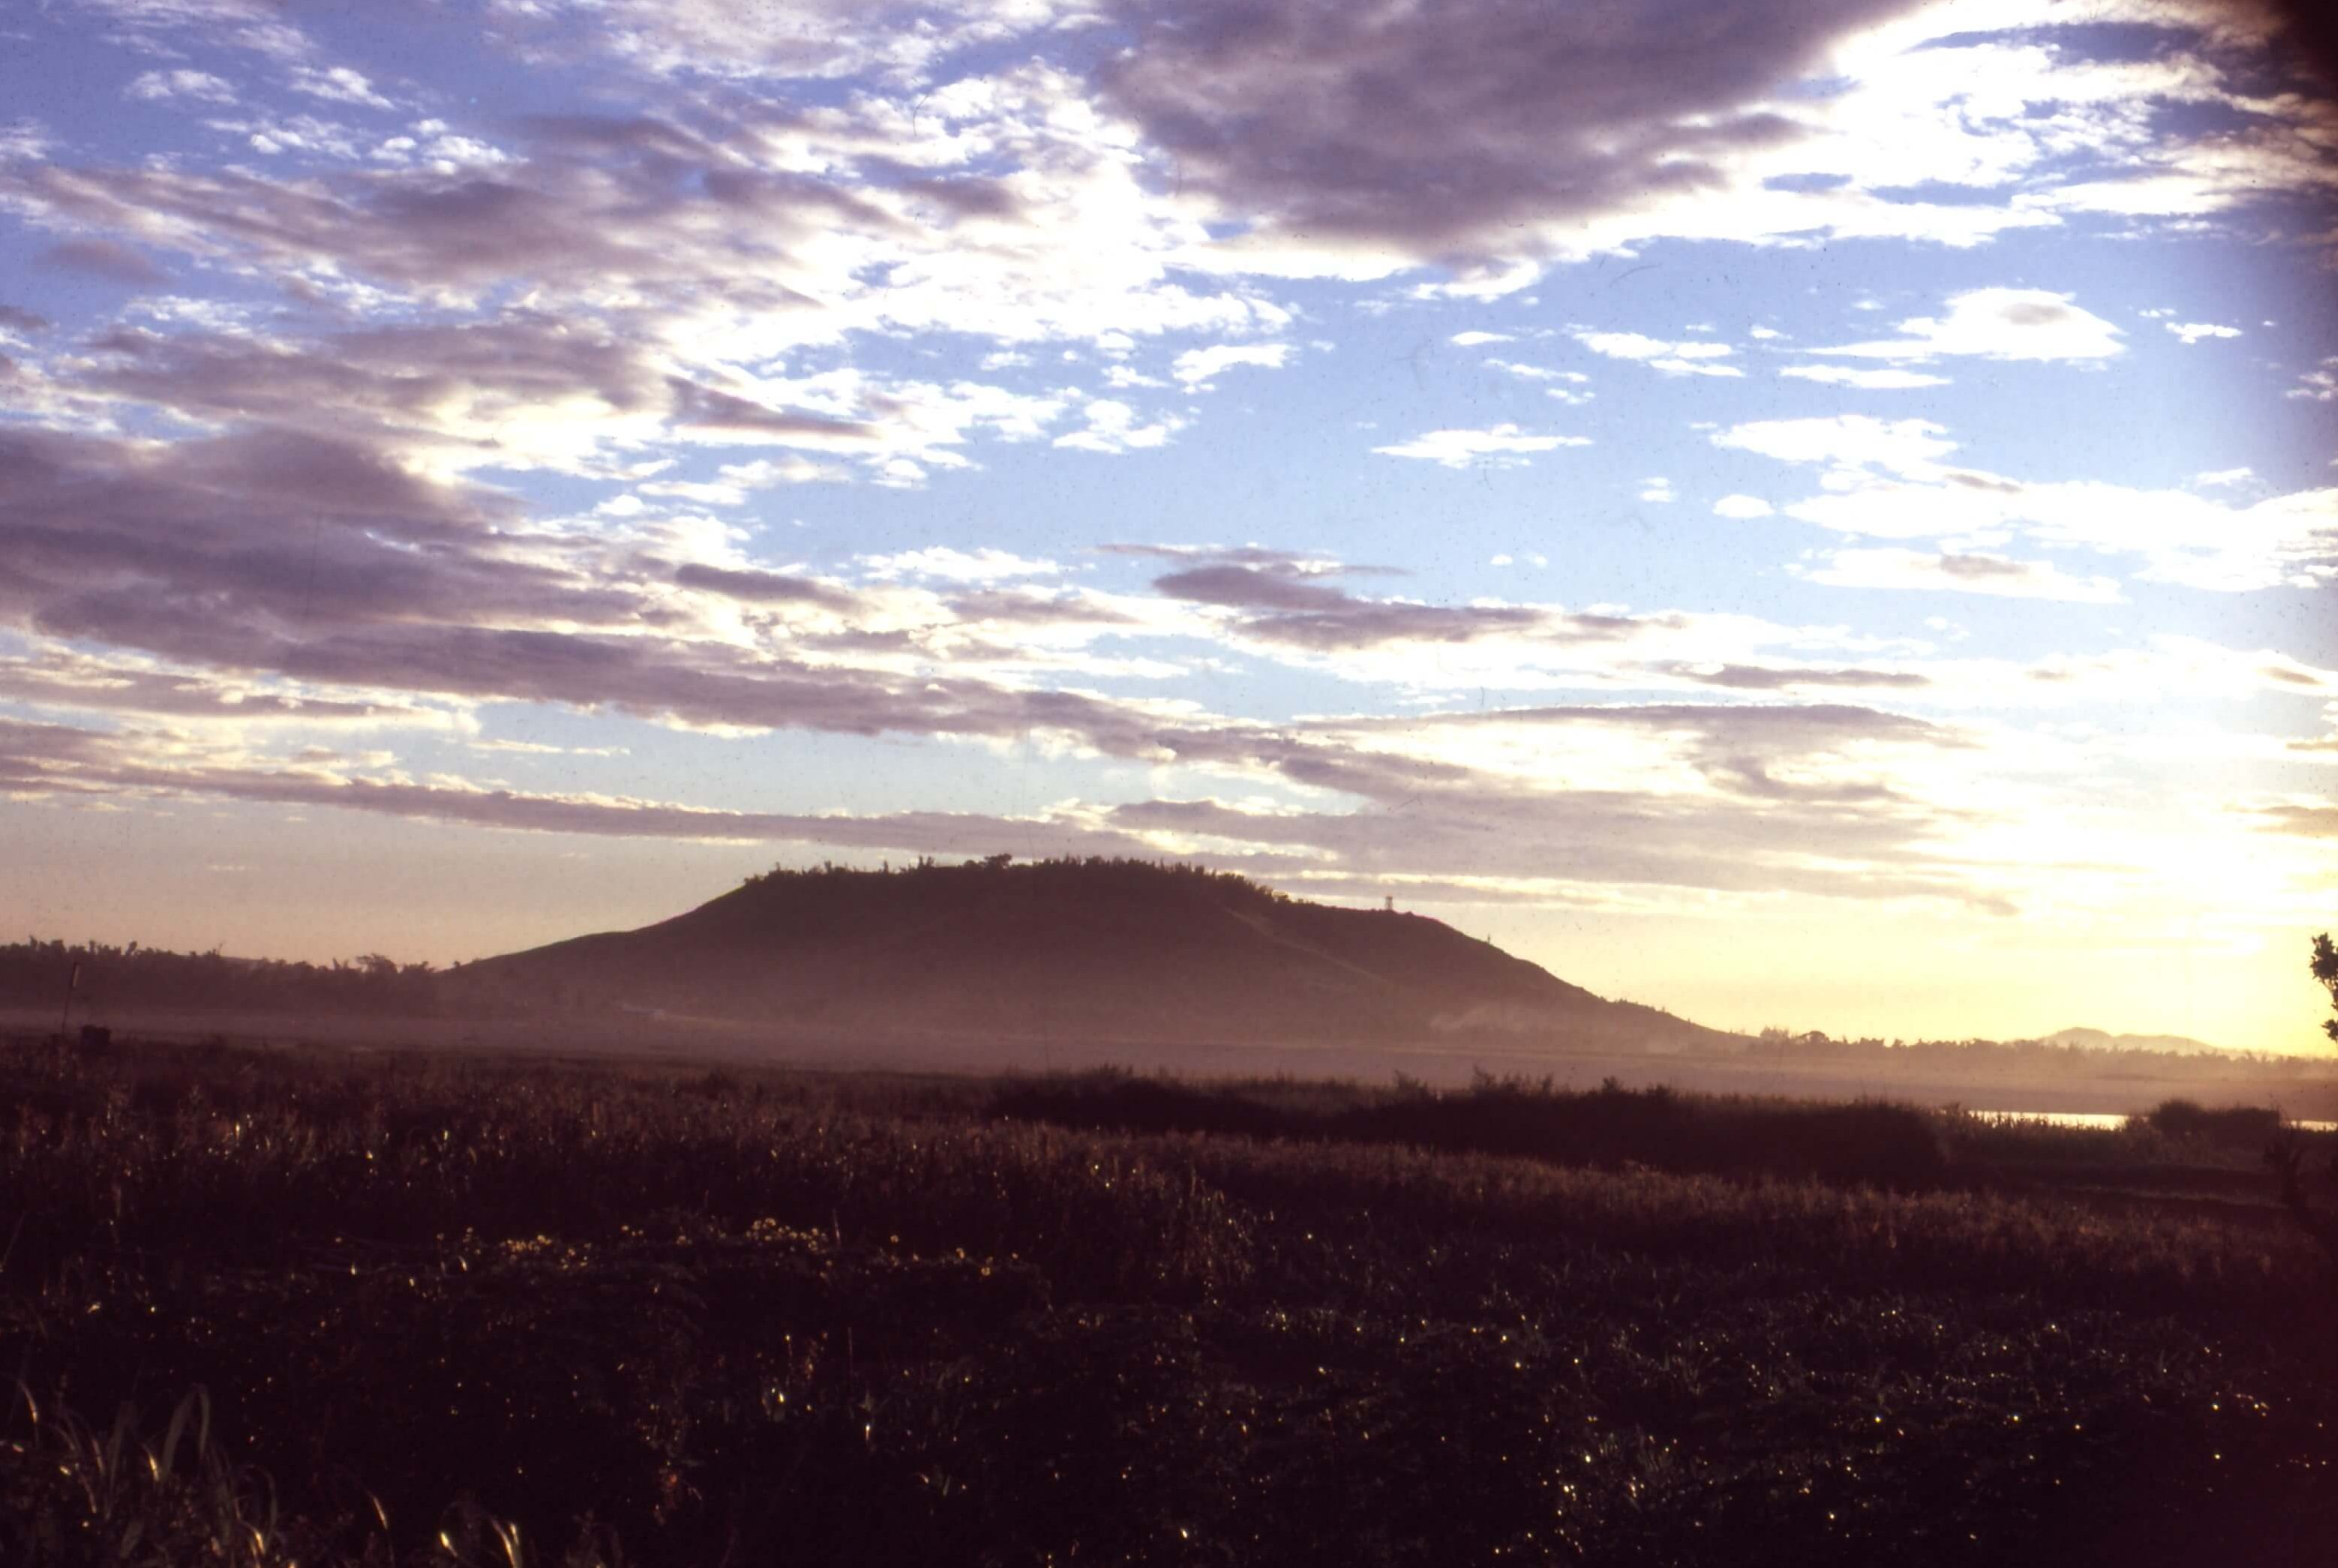 A field in the foreground, a foggy mountain in the background, and a sunrise.